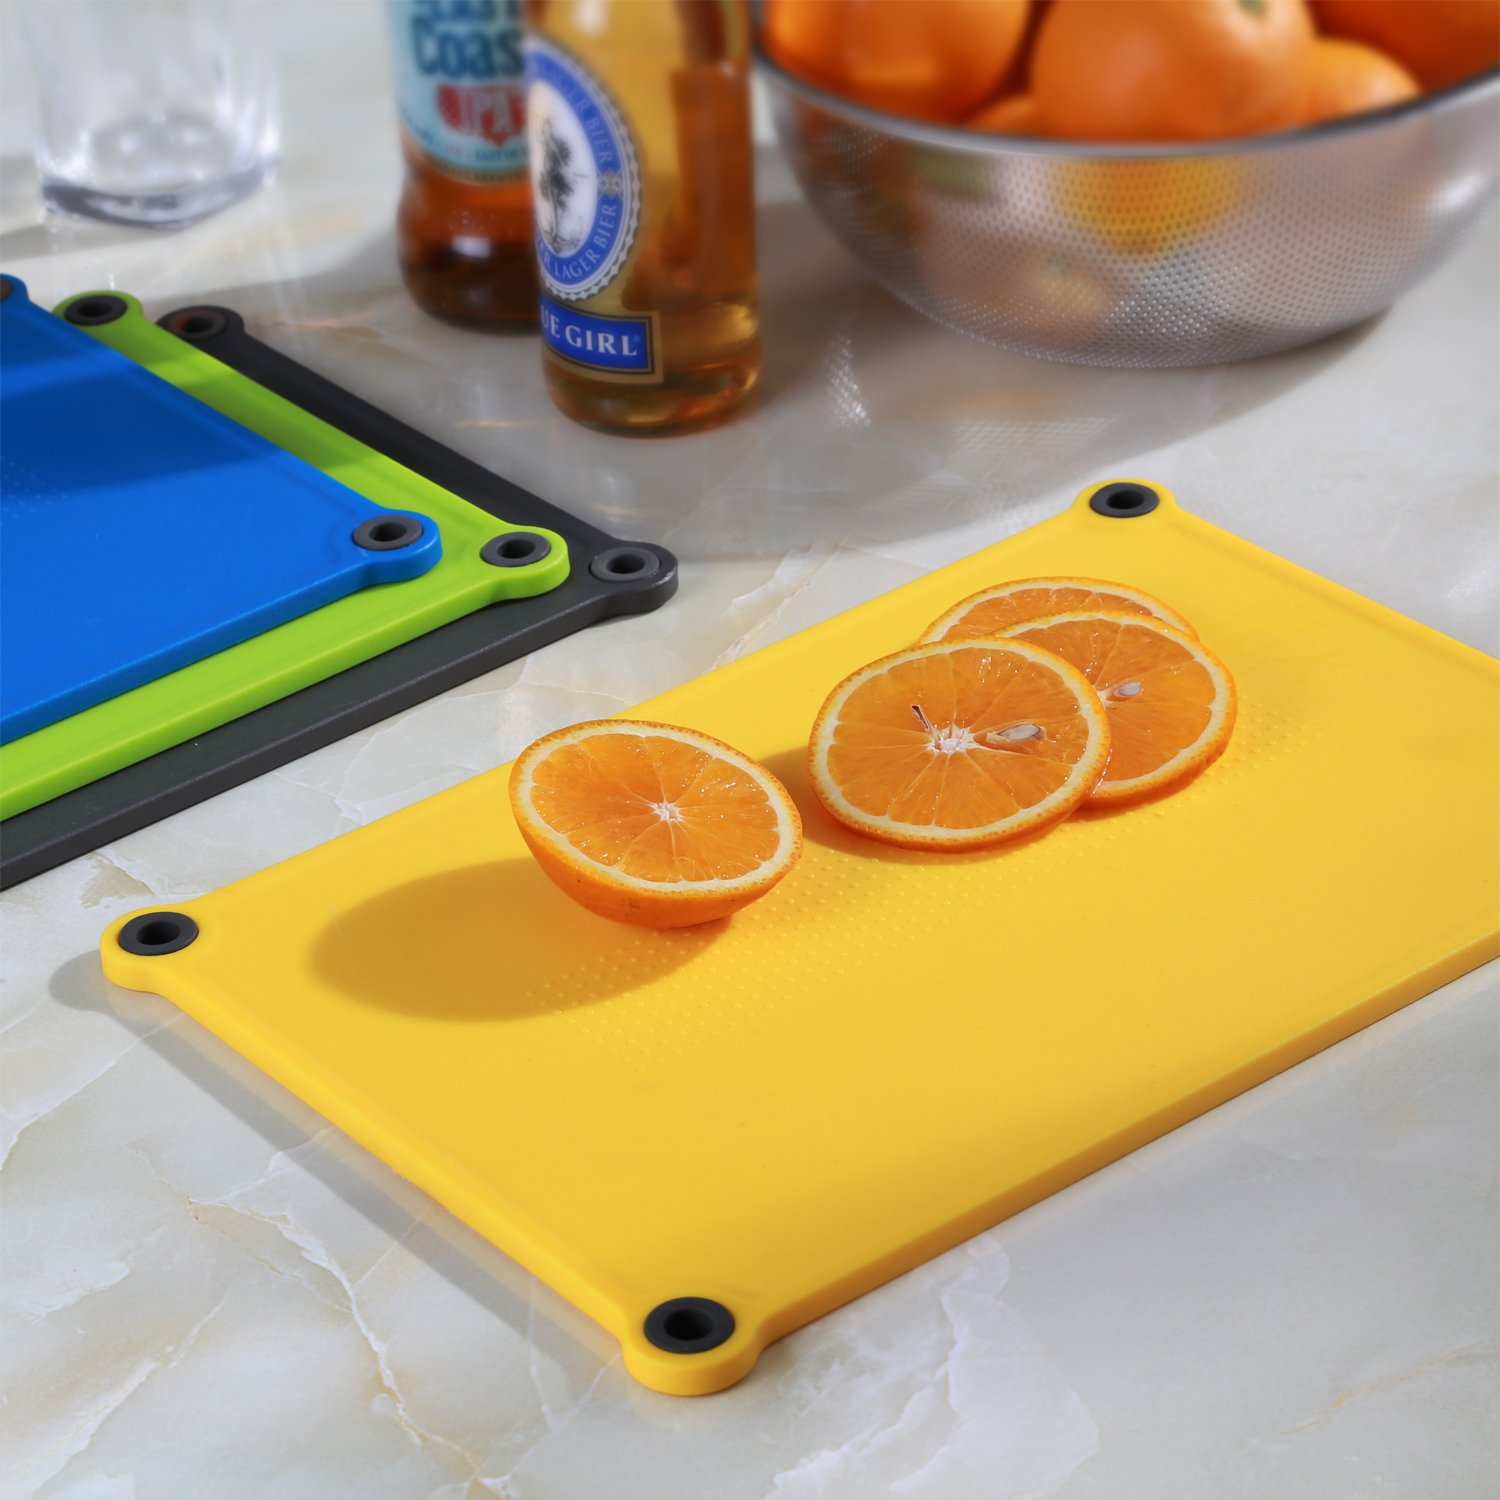 IDDOMUM Plastic Cutting Board for Kitchen (4-Piece Set), BPA Free, Double-Side Design, Dishwasher safe with Non-Slip Feet and Non-Spill Edges